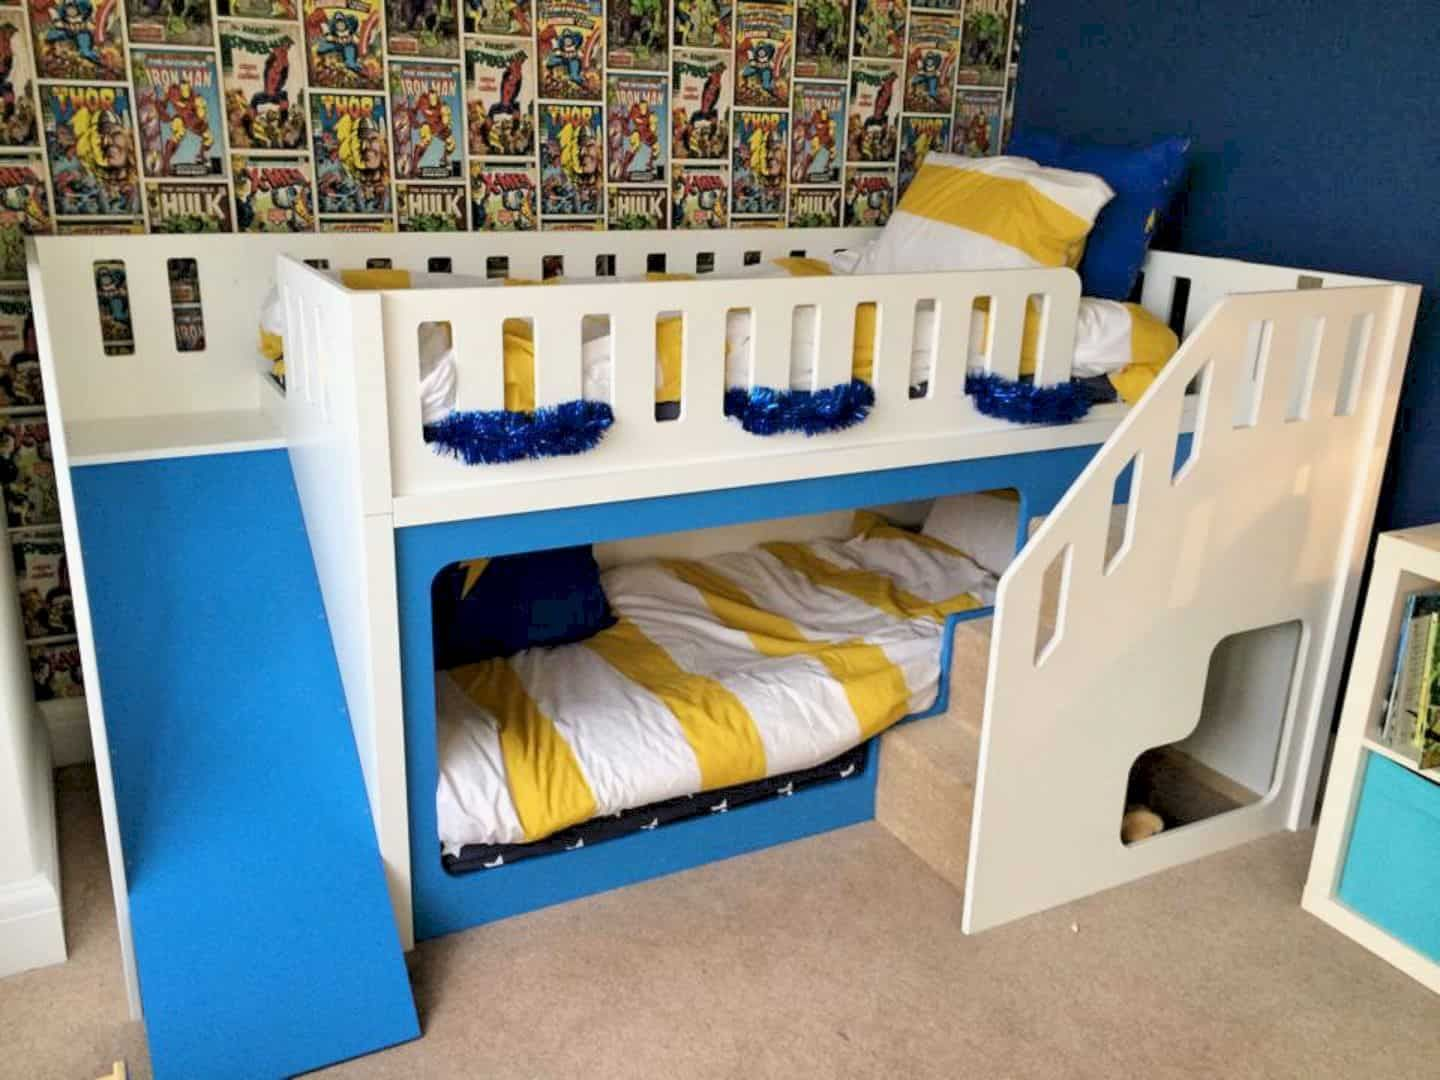 10 Top Kids Bunk Bed Design Ideas Cool bunk beds, Diy